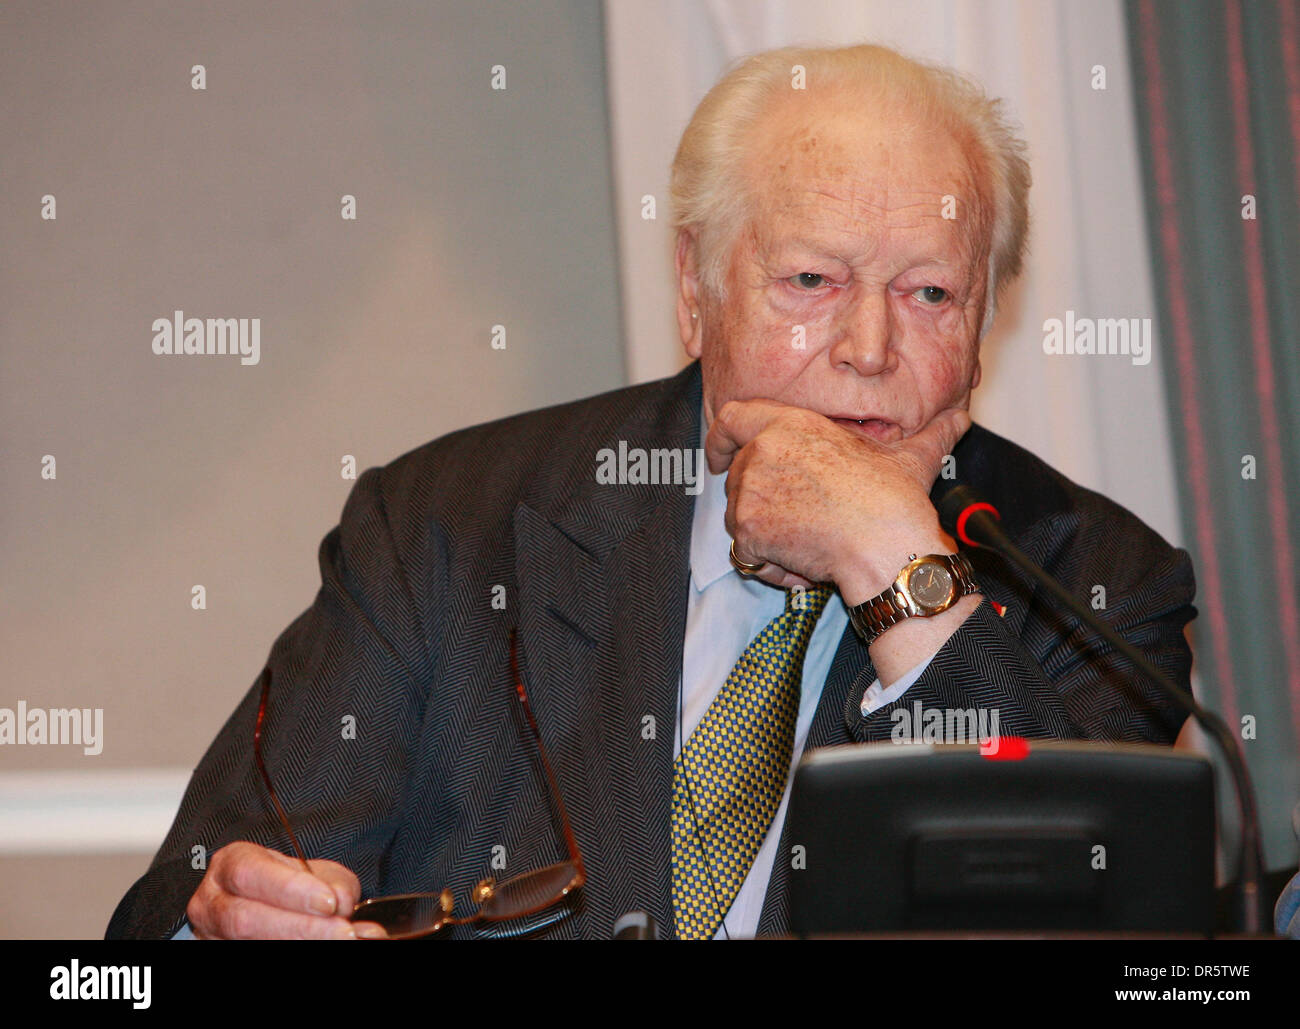 Apr 15, 2009 - Moscow, Russia - Prominent novelist and member of the French Academy MAURICE DRUON (Apr 23, 1918 - Apr 14, 2009) died in Paris on Tuesday at the age of 90. The former French cavalry officer wrote the lyrics for the famous war song 'Chant des Partisans.' PICTURED - Mar 28, 2007 - Russia - Maurice Druon in Moscow. (Credit Image: © PhotoXpress/ZUMA Press) RESTRICTIONS:  - Stock Image